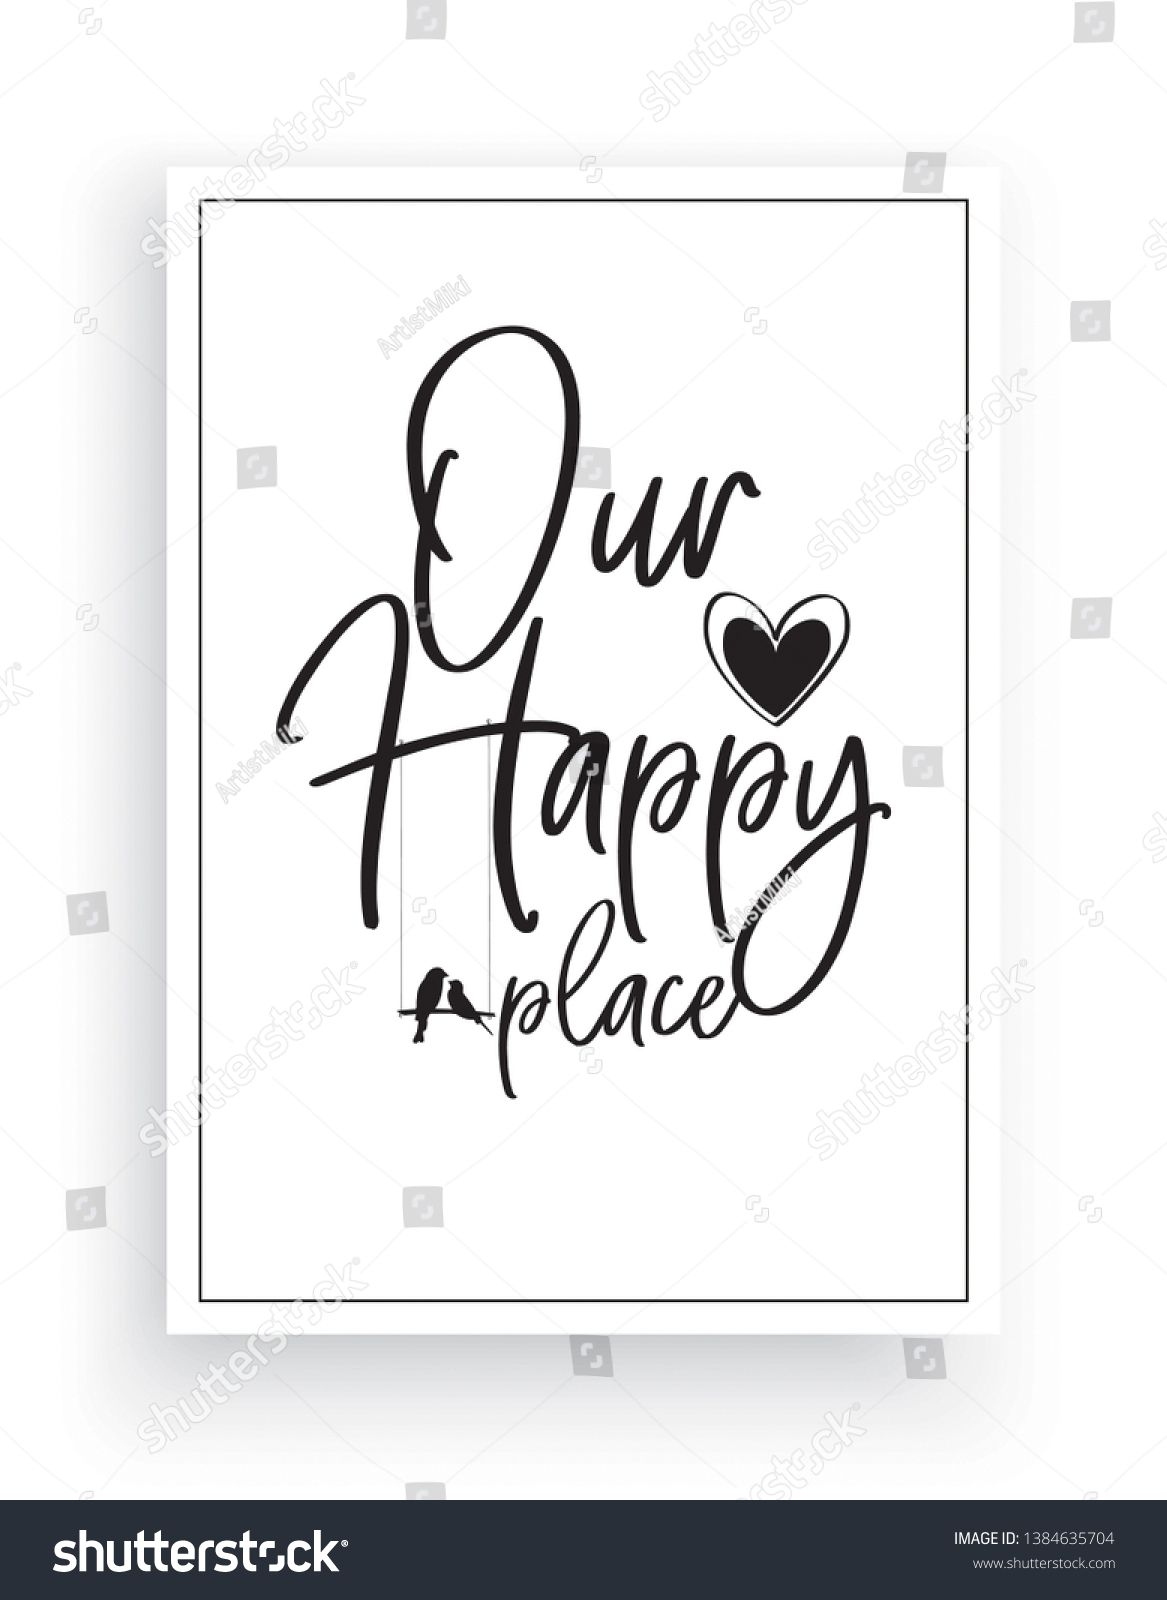 Minimalist Wording Design Our Happy Place Wall Decor Wall Decals Vector Birds Silhouettes On A Swing Wording Design Lettering Design Word Design Lettering